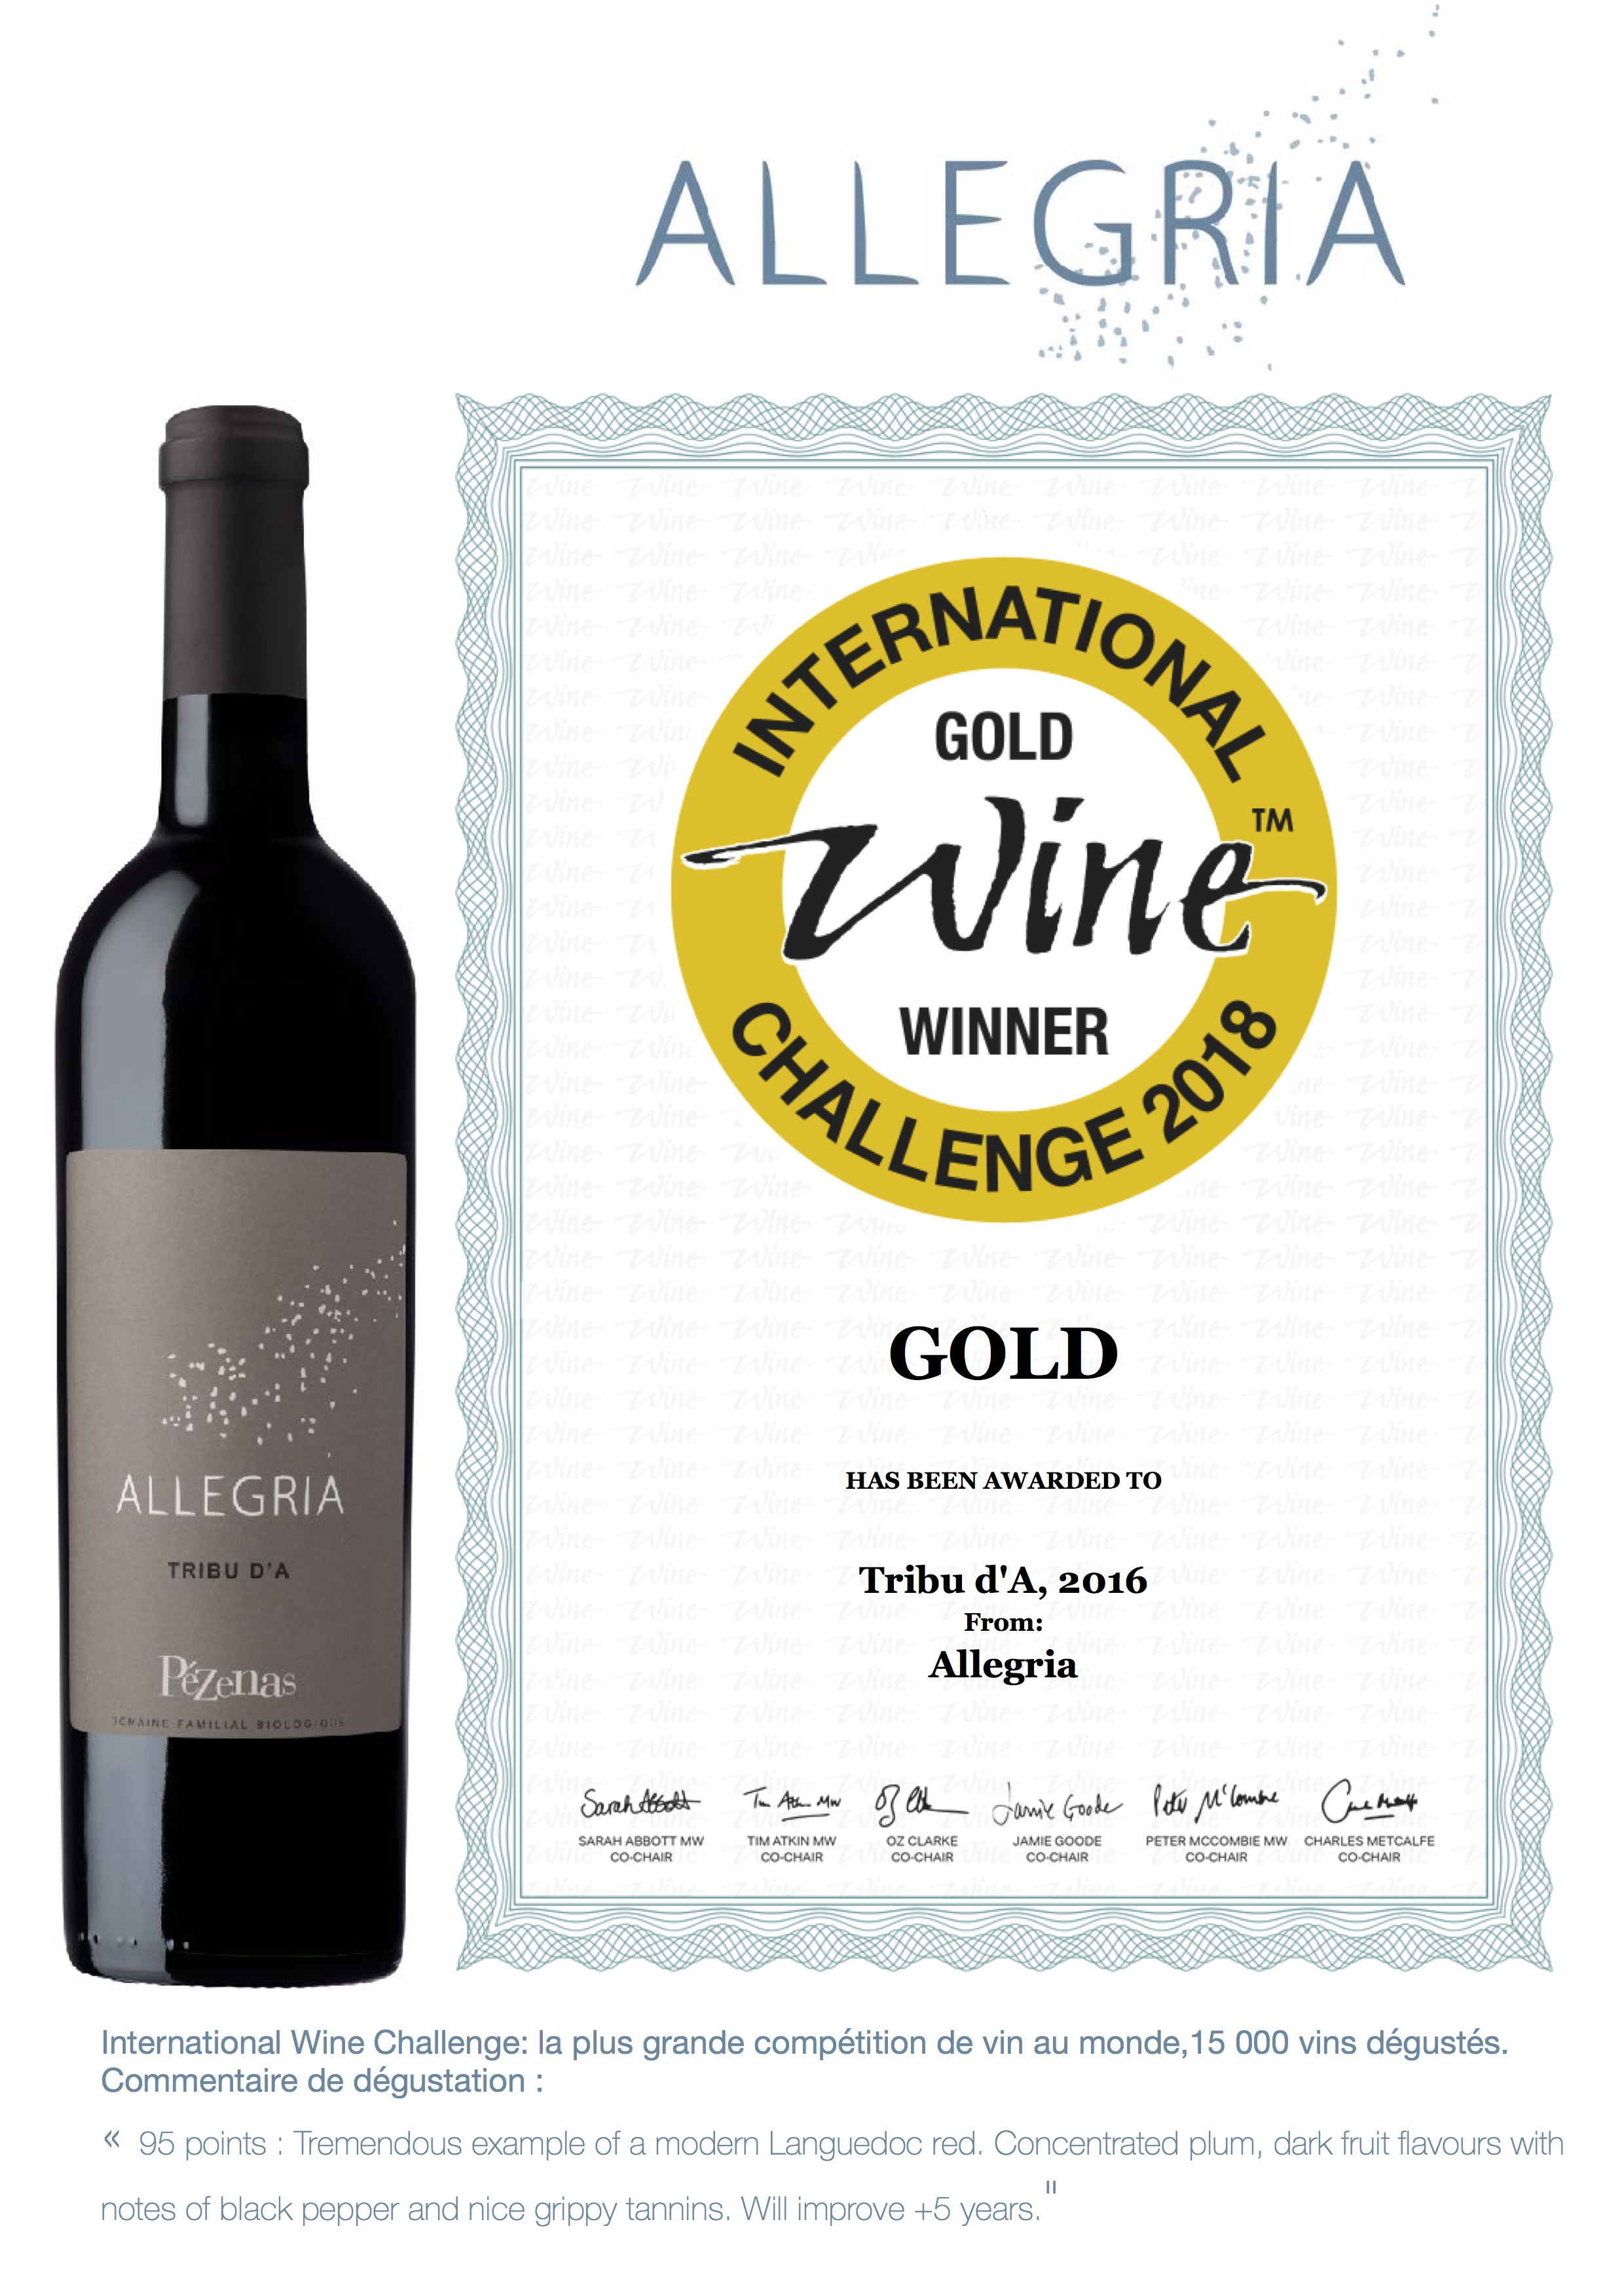 International Wine Challenge: Médaille d'or pour le Tribu d'A